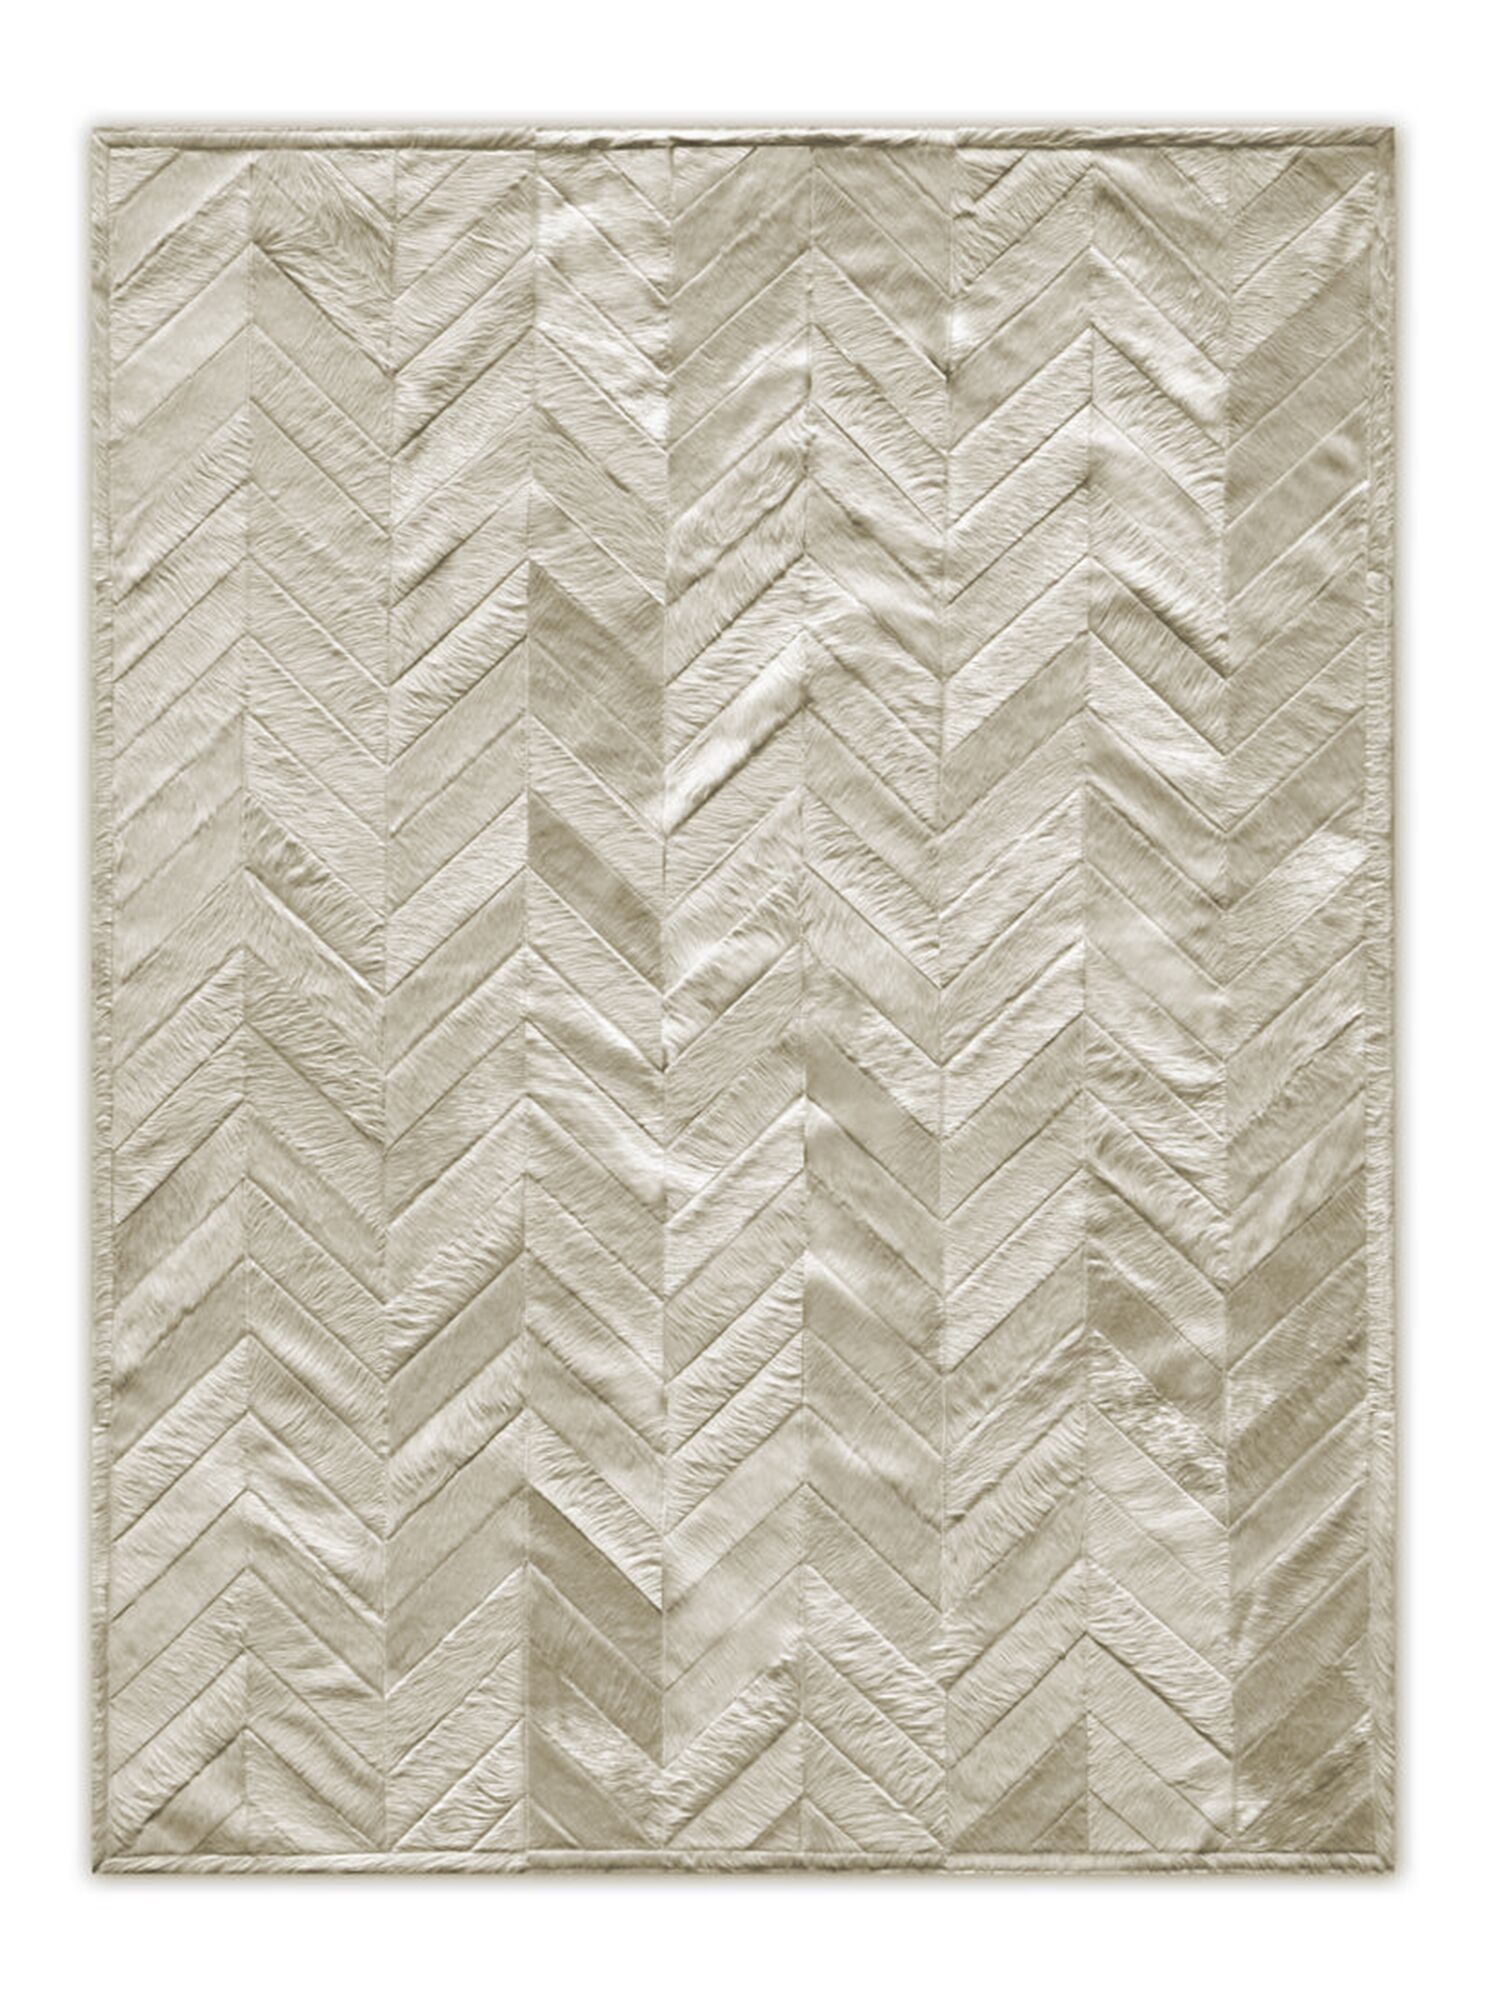 Josephina Stitch Hand-Woven Cowhide Parquet Natural Area Rug Rug Size: 8' x 10'